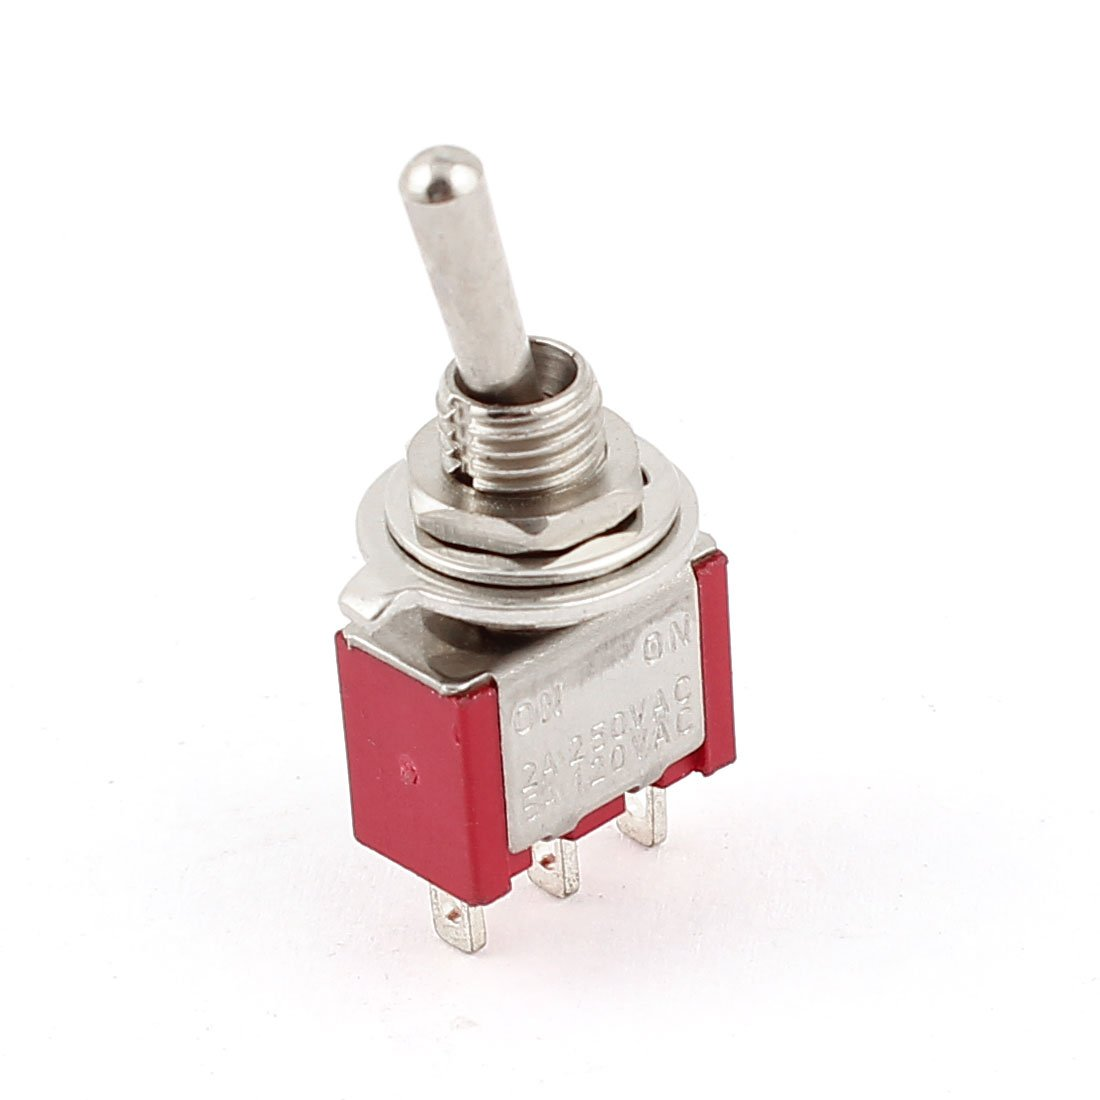 ON Model Rail X 5 SPDT ON-OFF- Miniature Toggle Switch Sprung loaded Switch